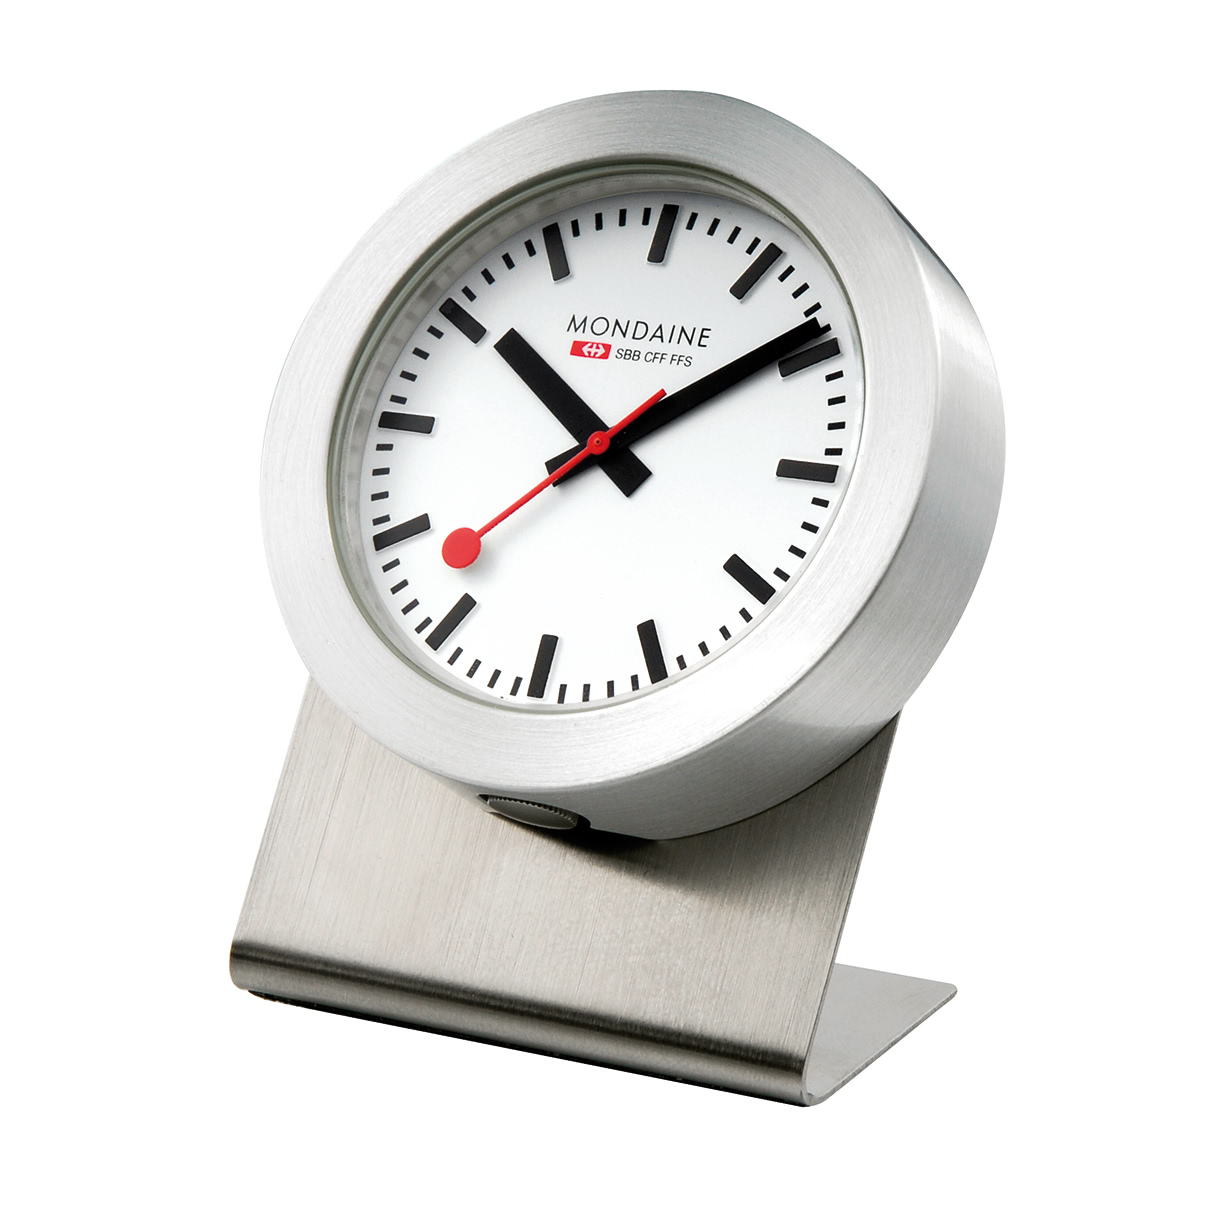 Accessories No 03 Clocks: Mondaine Magnet Clock